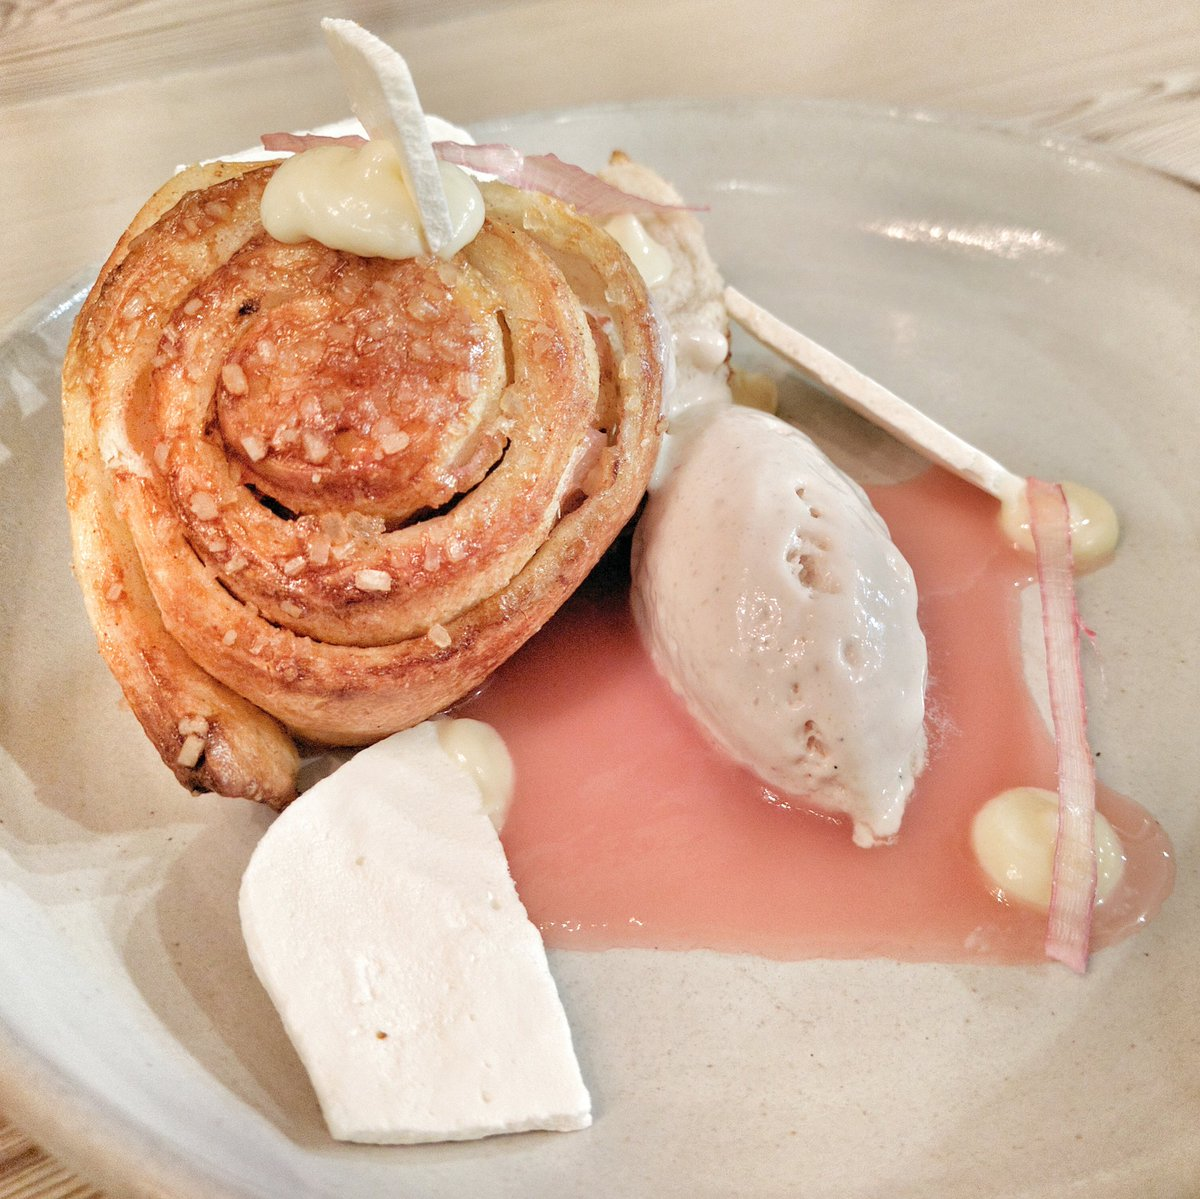 Rhubarb Cinnamon buns at Thoroughbred Food and Drink in Toronto, Ontario